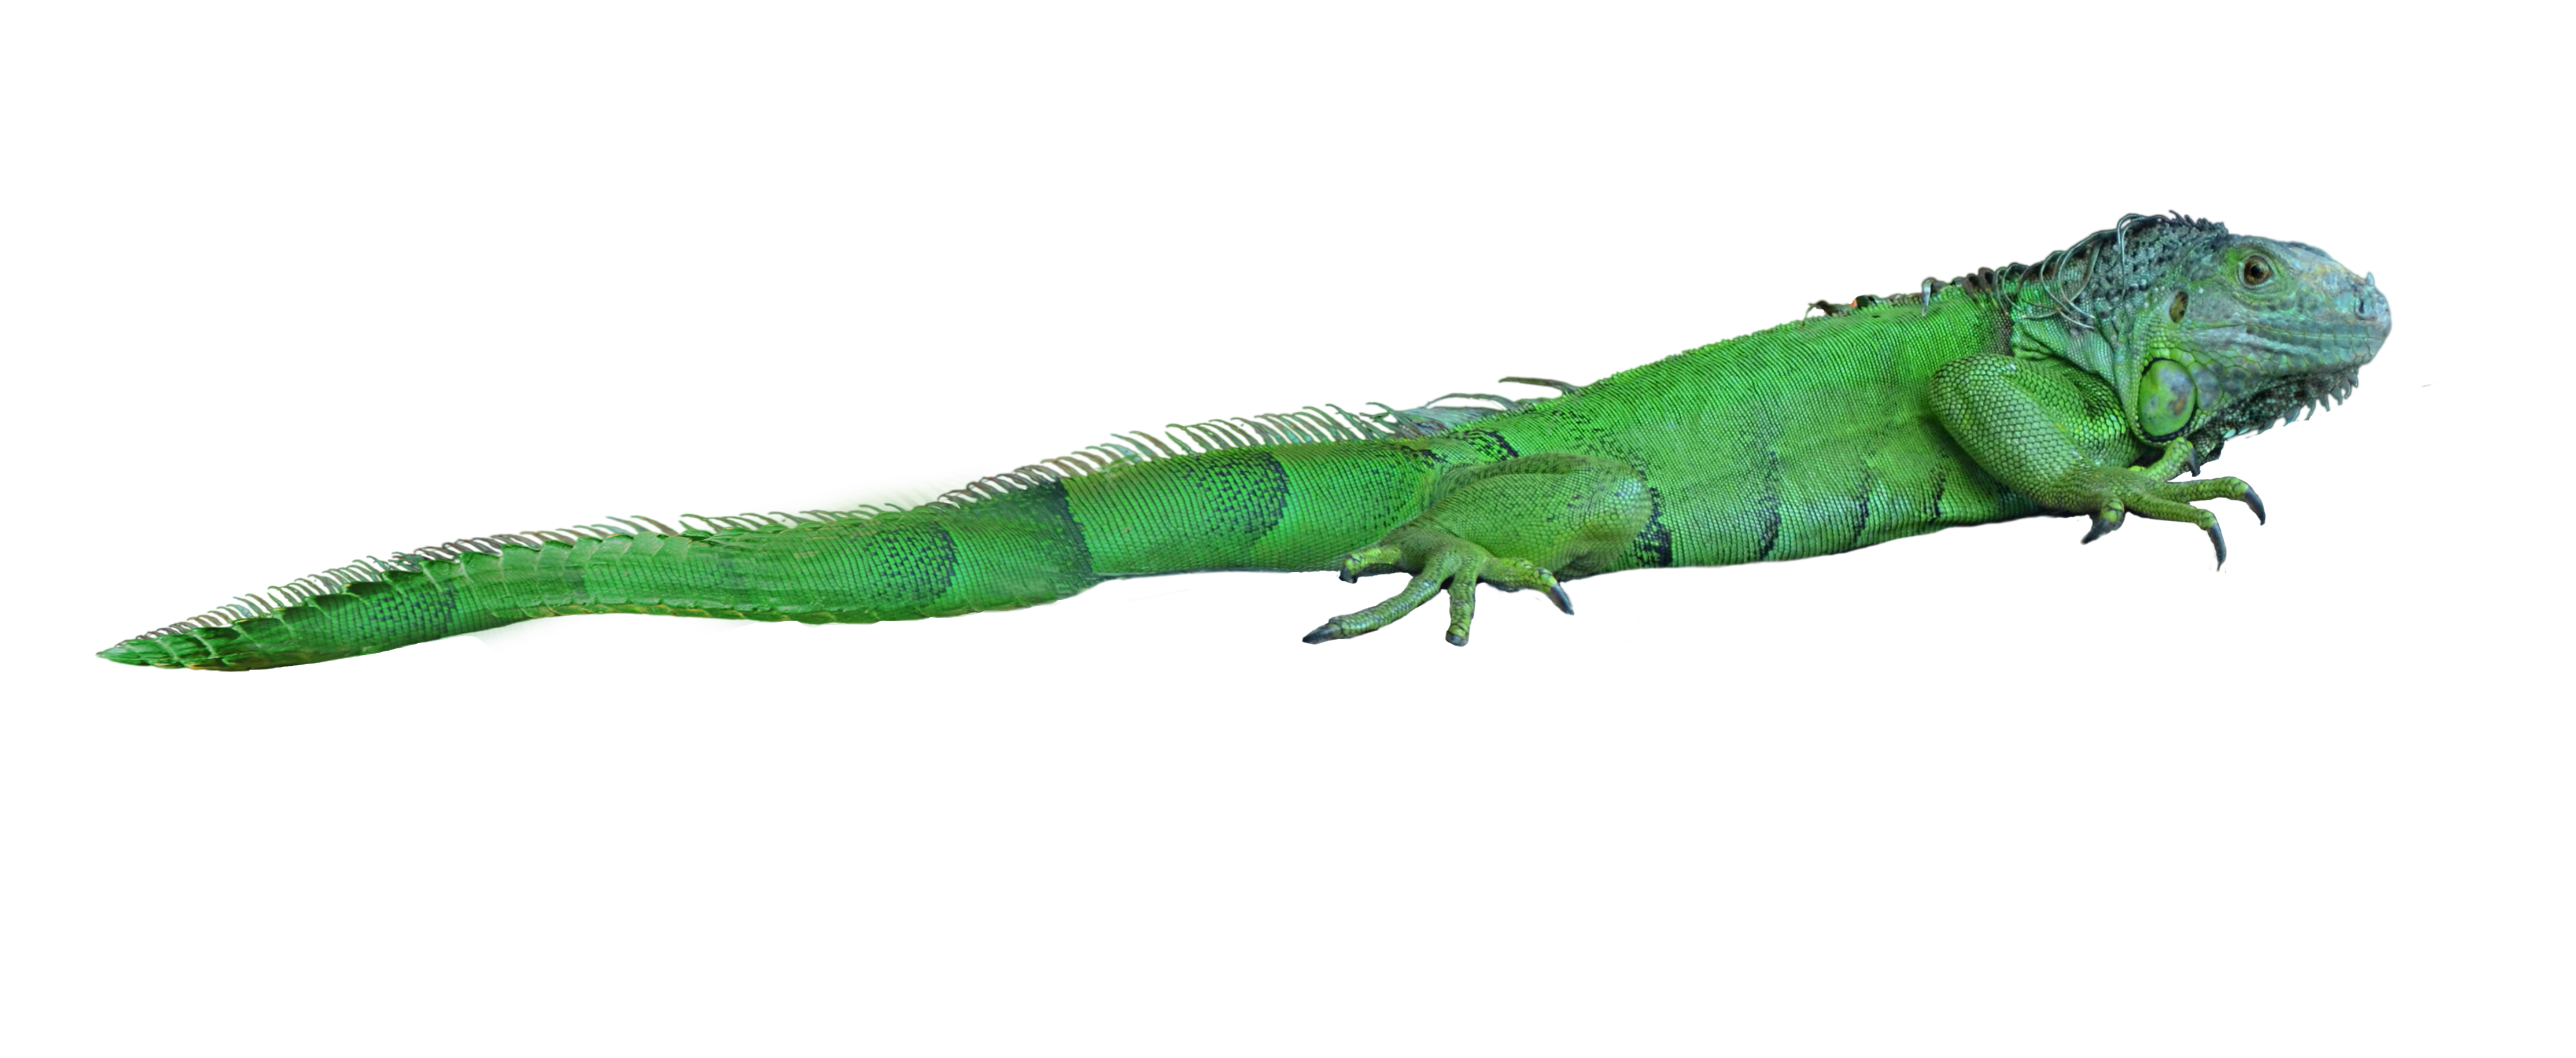 Png images free download. Lizard clipart iguana